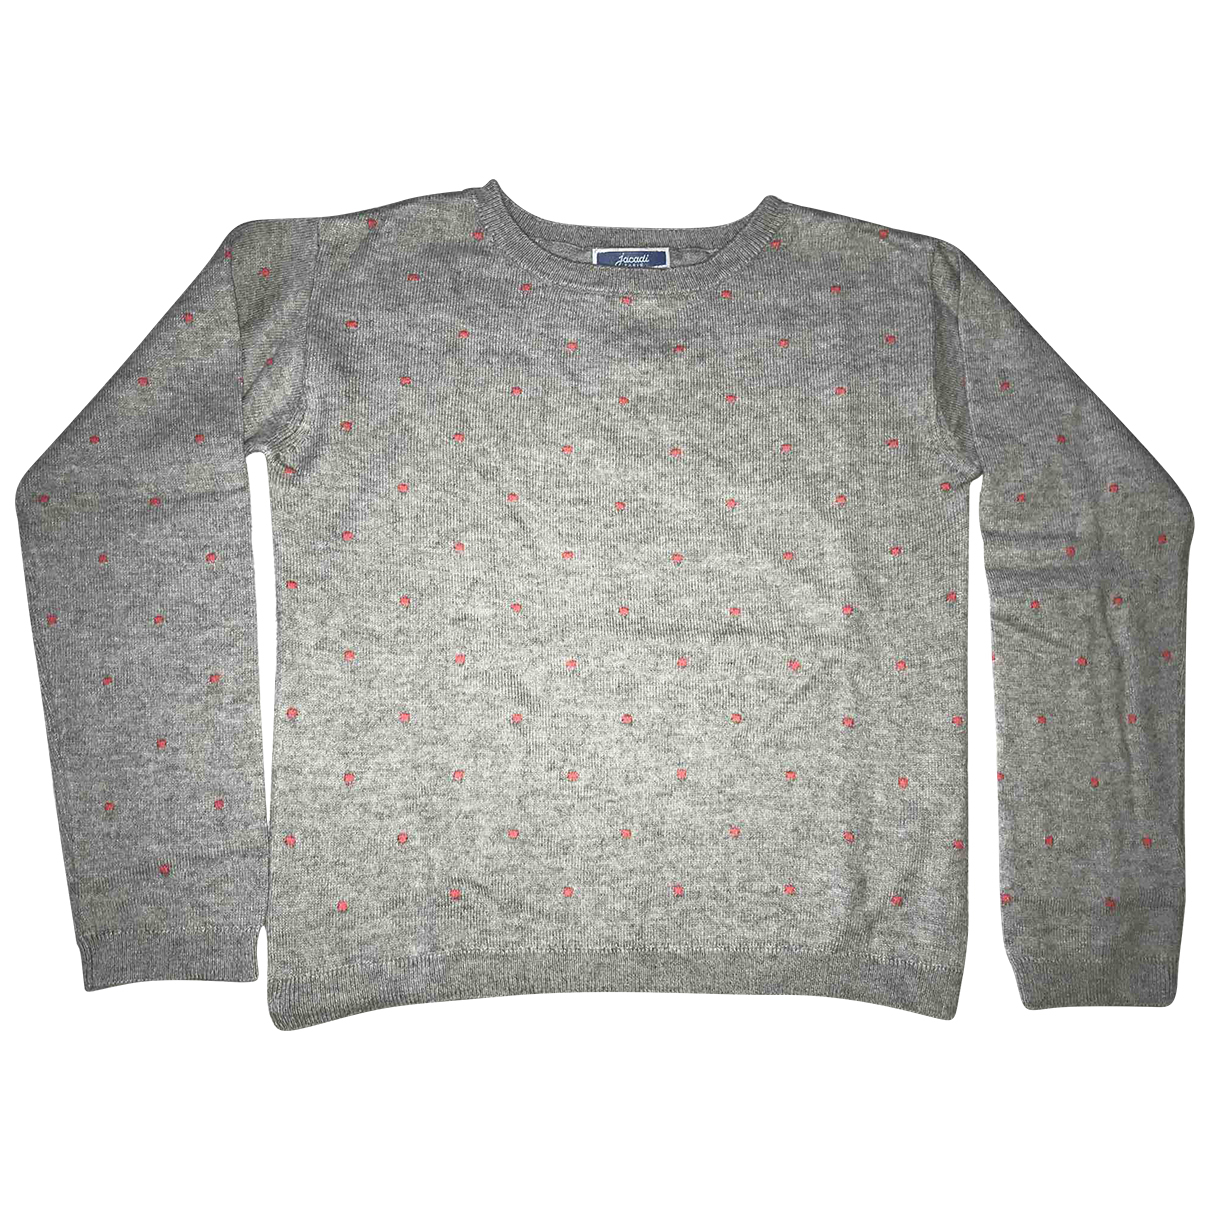 Jacadi N Grey Cotton Knitwear for Kids 6 years - up to 114cm FR